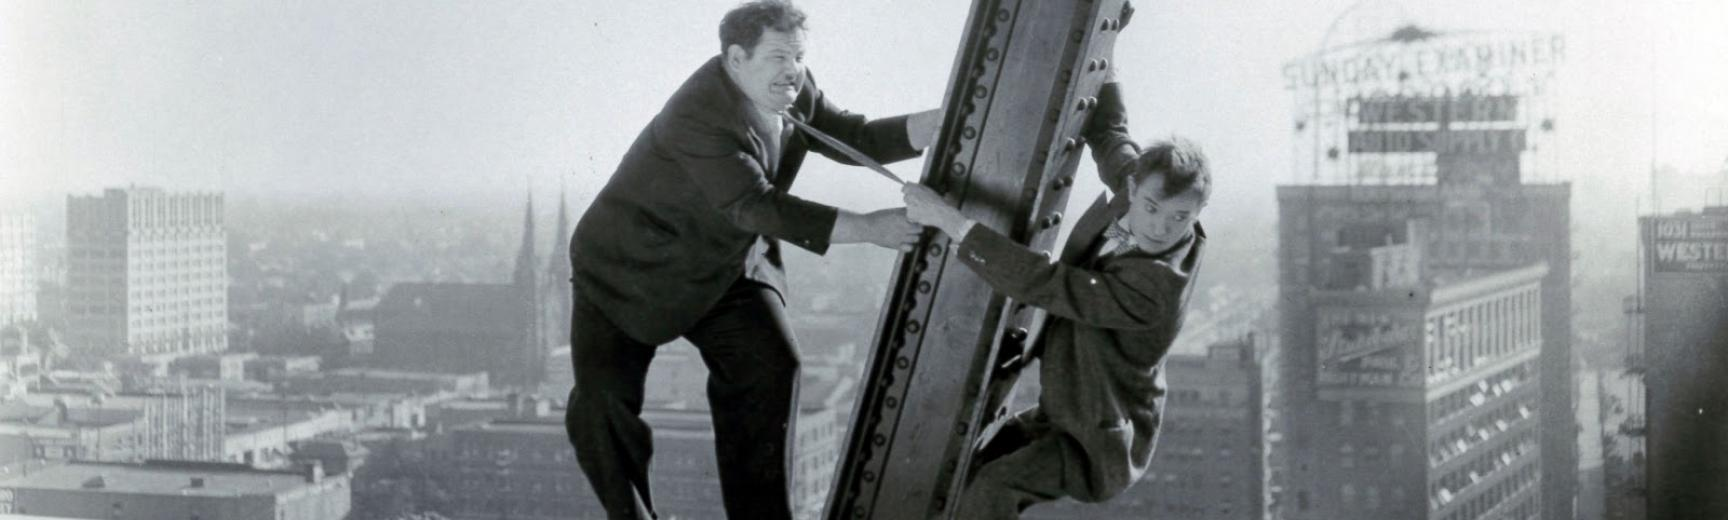 still from the film liberty